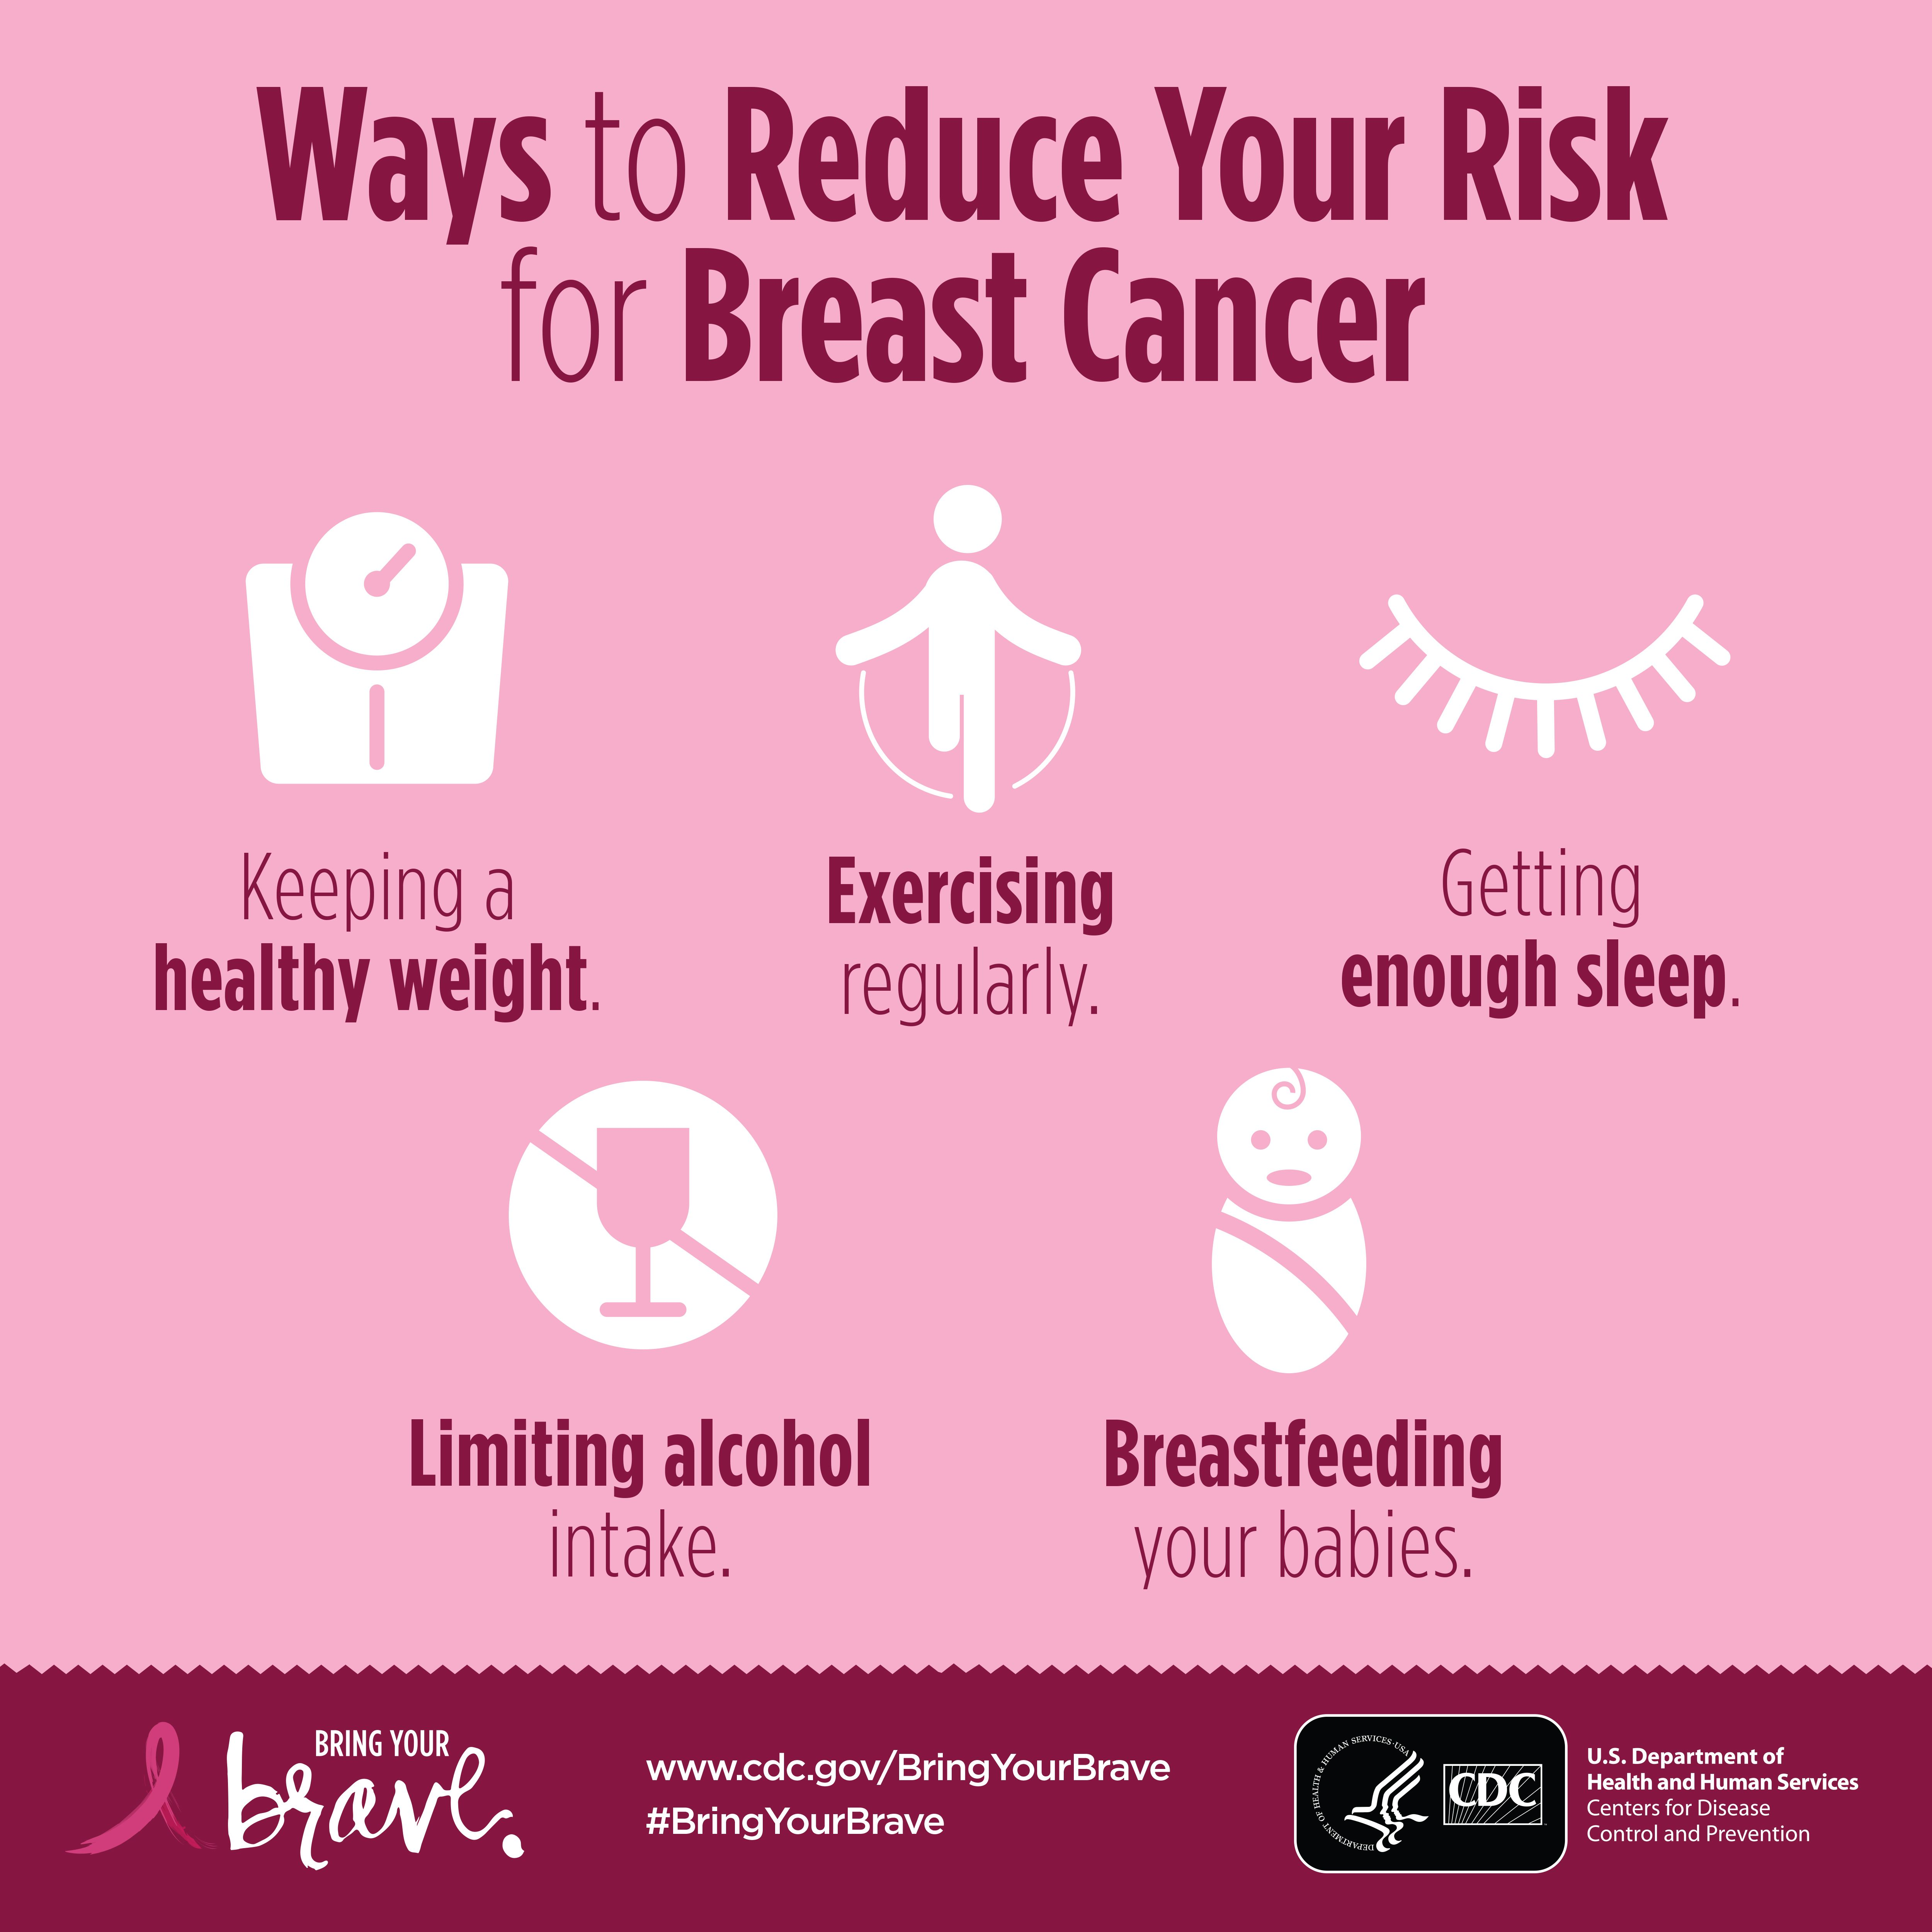 How to Calculate Your Risk for Breast Cancer